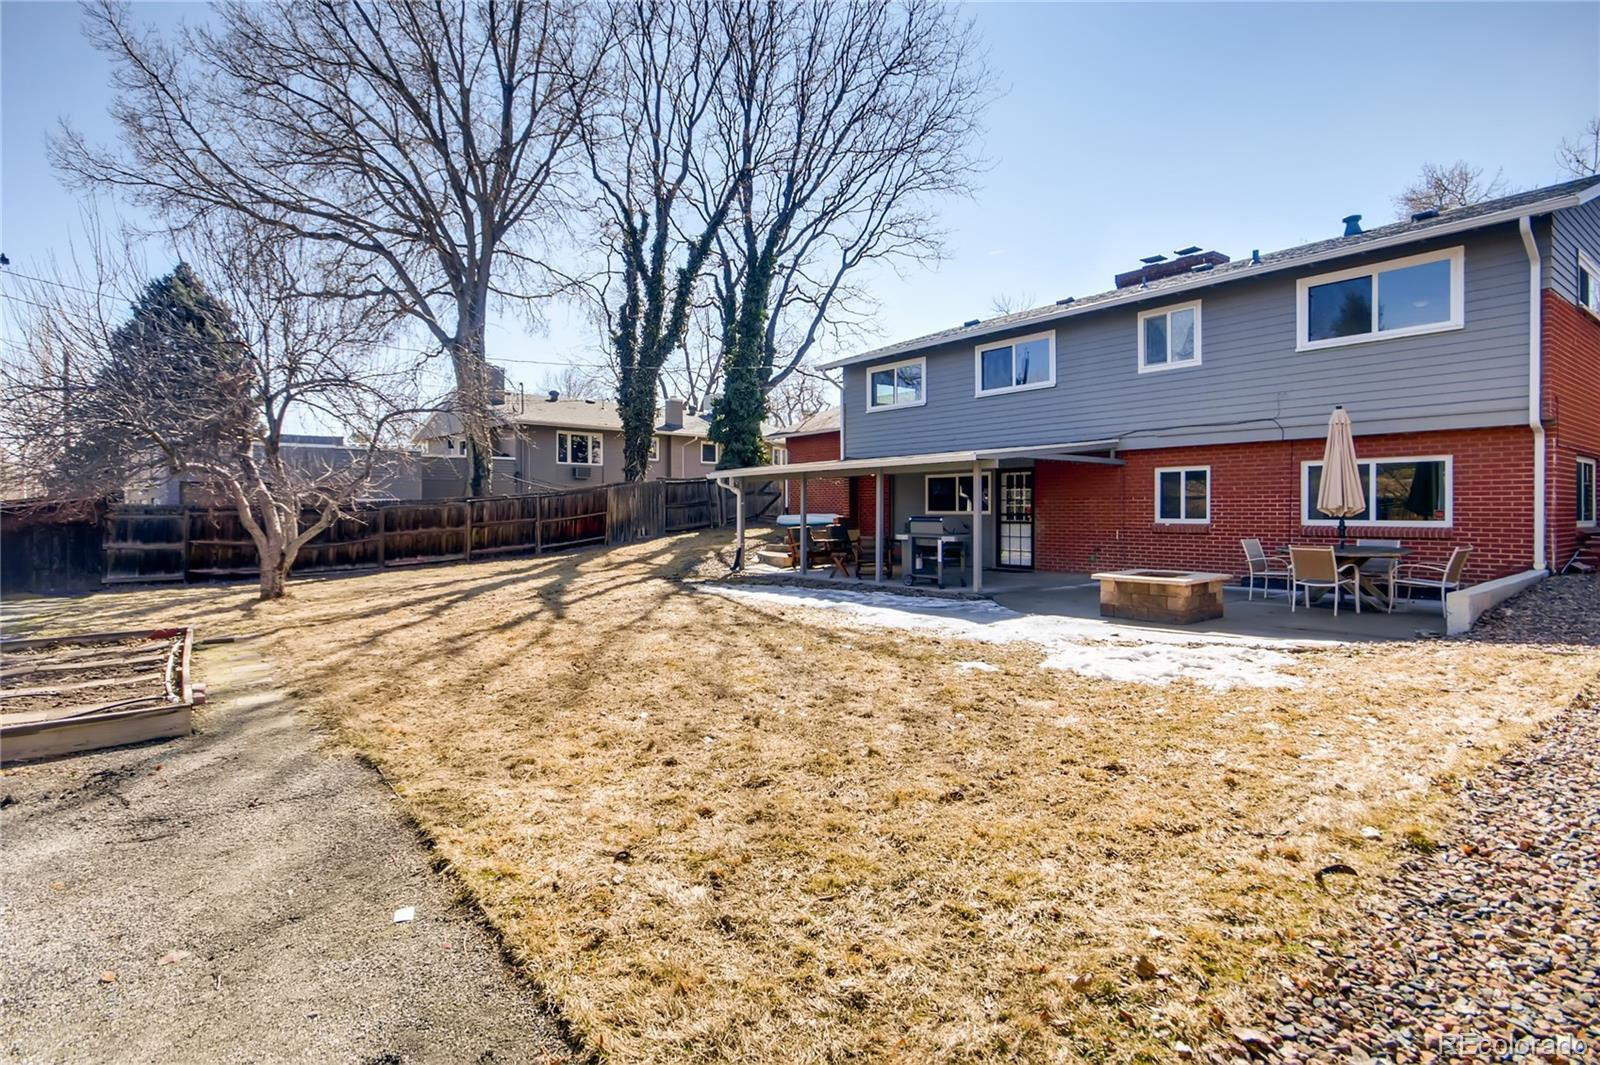 MLS# 9197299 - 27 - 10511 W 22nd Place, Lakewood, CO 80215